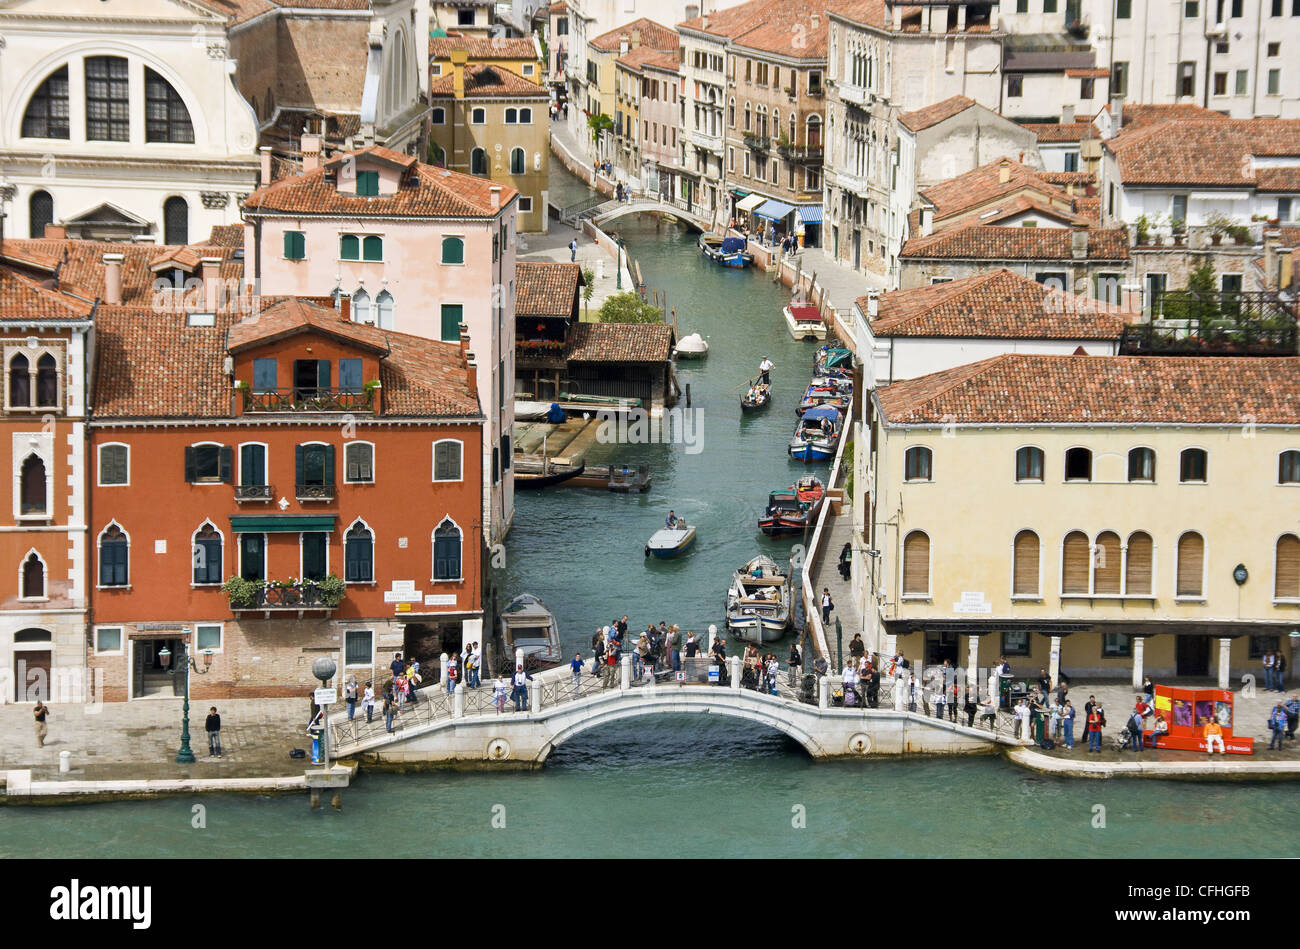 View of the canal and Ponte Longo in Venice from a cruiseship - Stock Image